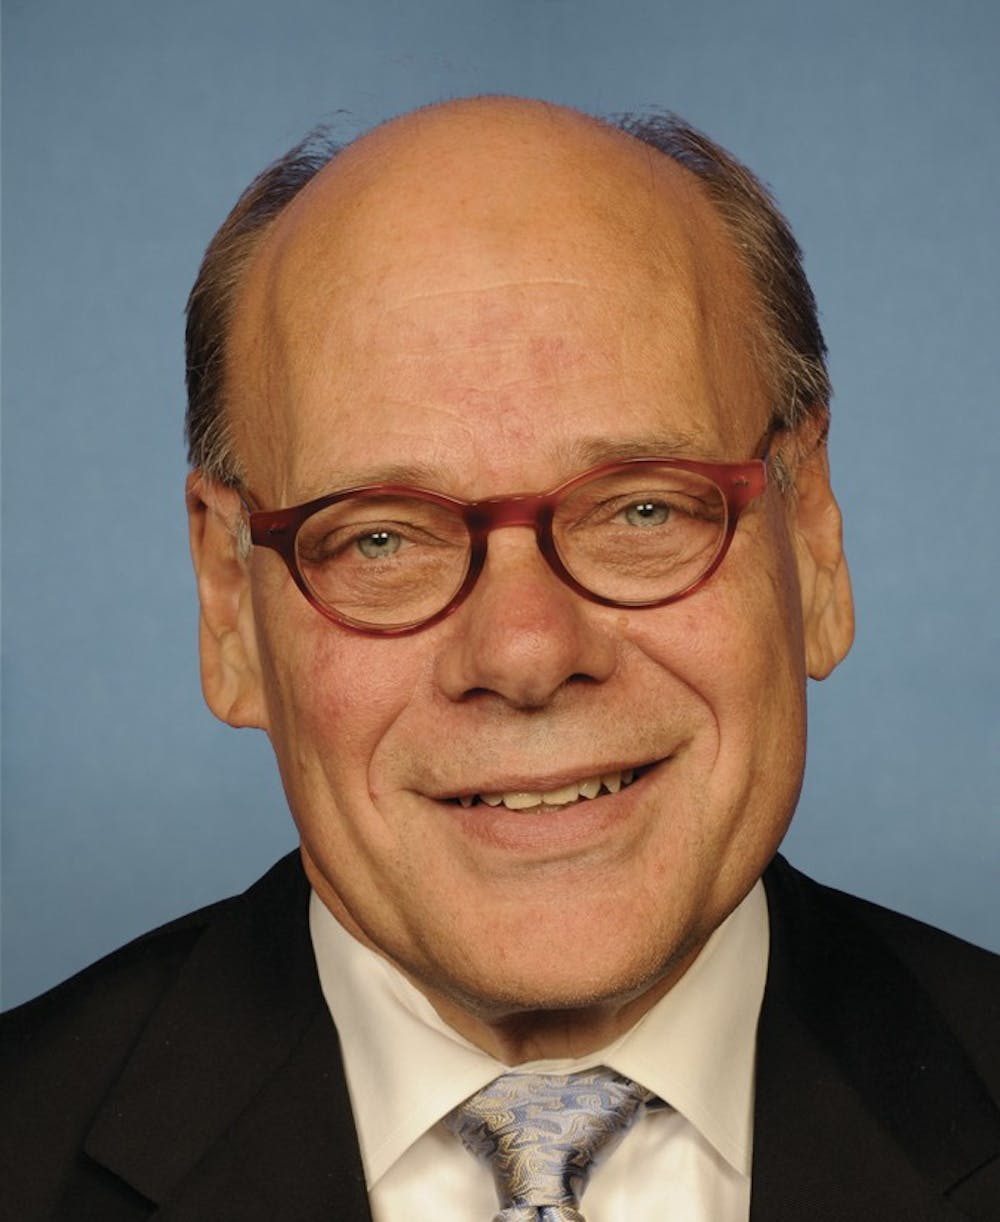 Tennessee Congressman Steve Cohen to speak at AU later this month